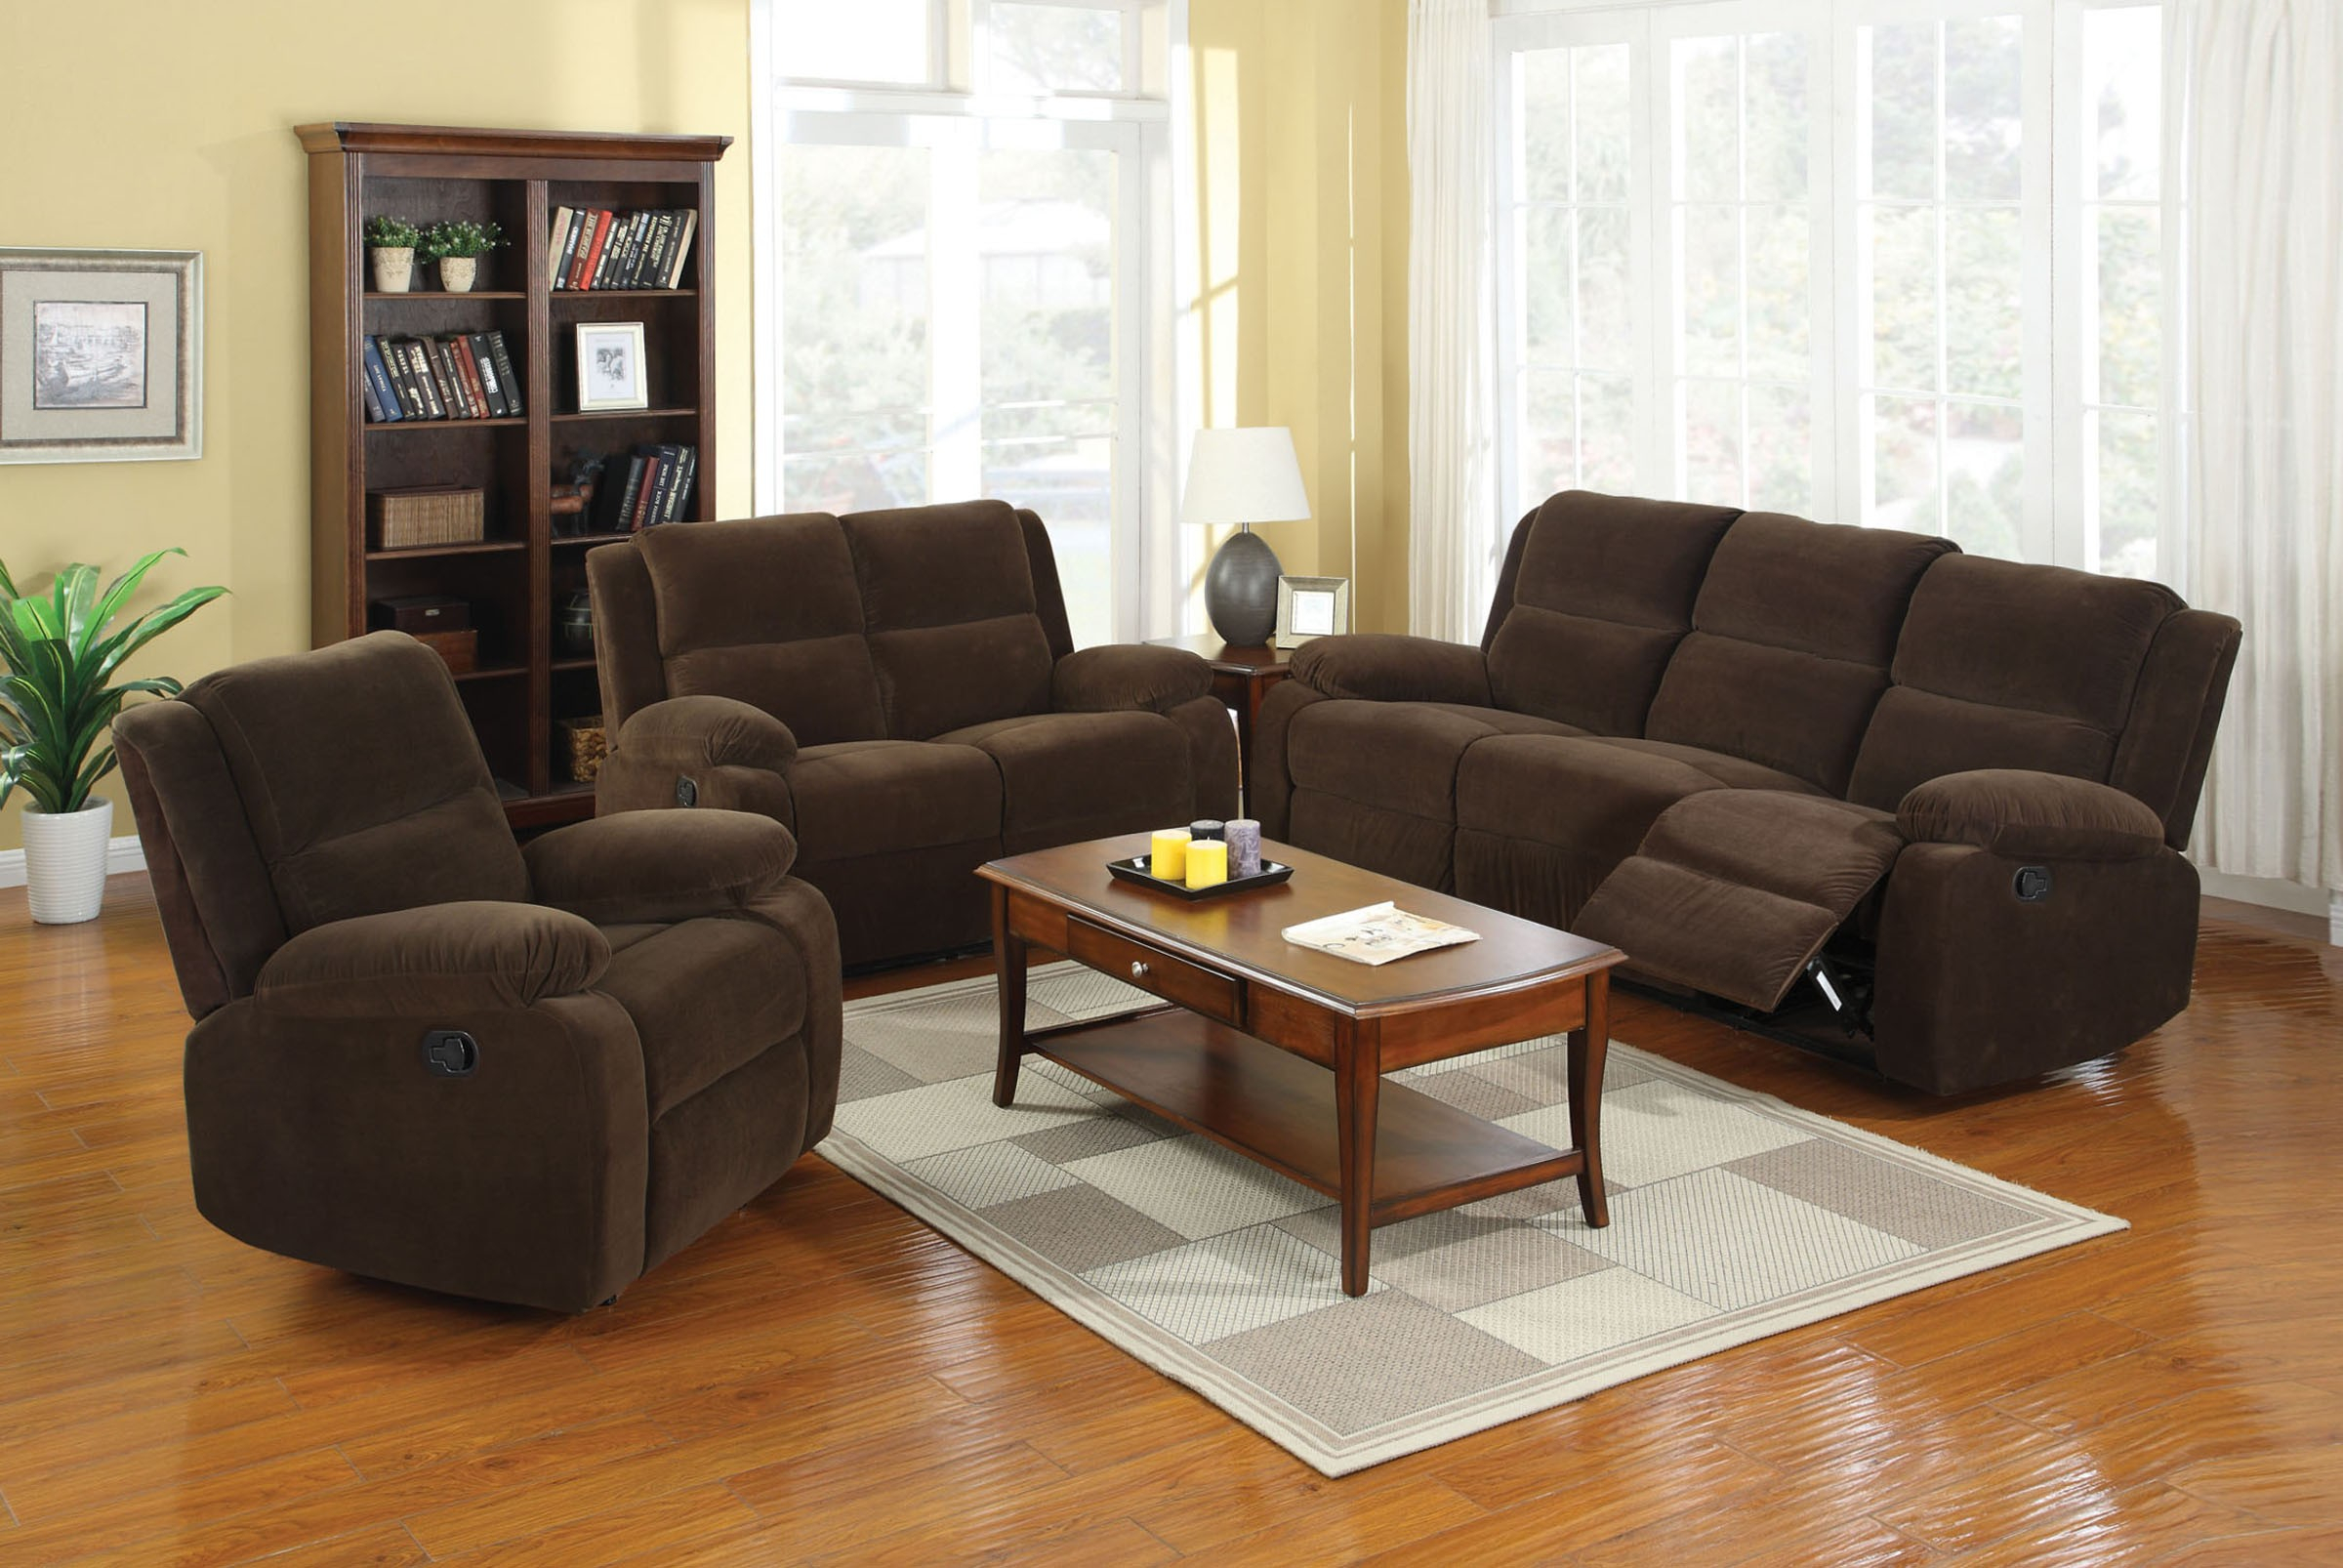 Furniture Of America Haven Living Room Set In Dark Brown | Local In Haven Sofa Chairs (View 23 of 25)